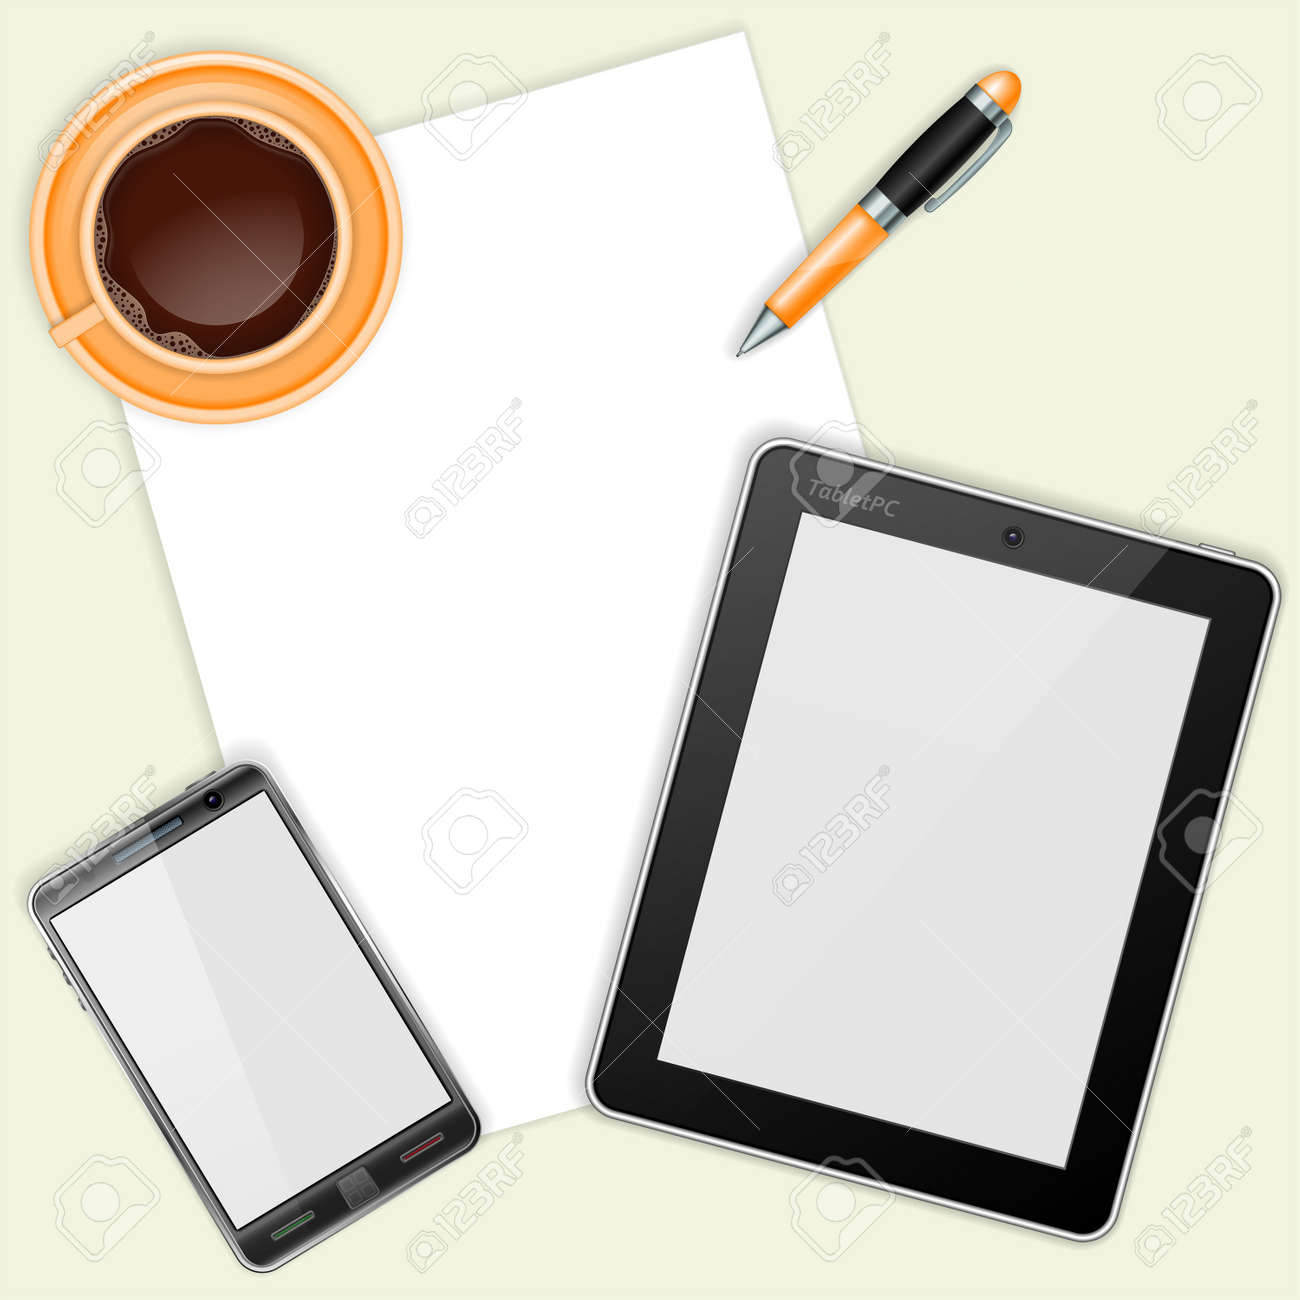 Business and Corporate Work Concept with Tablet PC, Mobile Phone with Blank Screen, Sheet Paper, Pen and Coffee Cup Stock Vector - 18787102